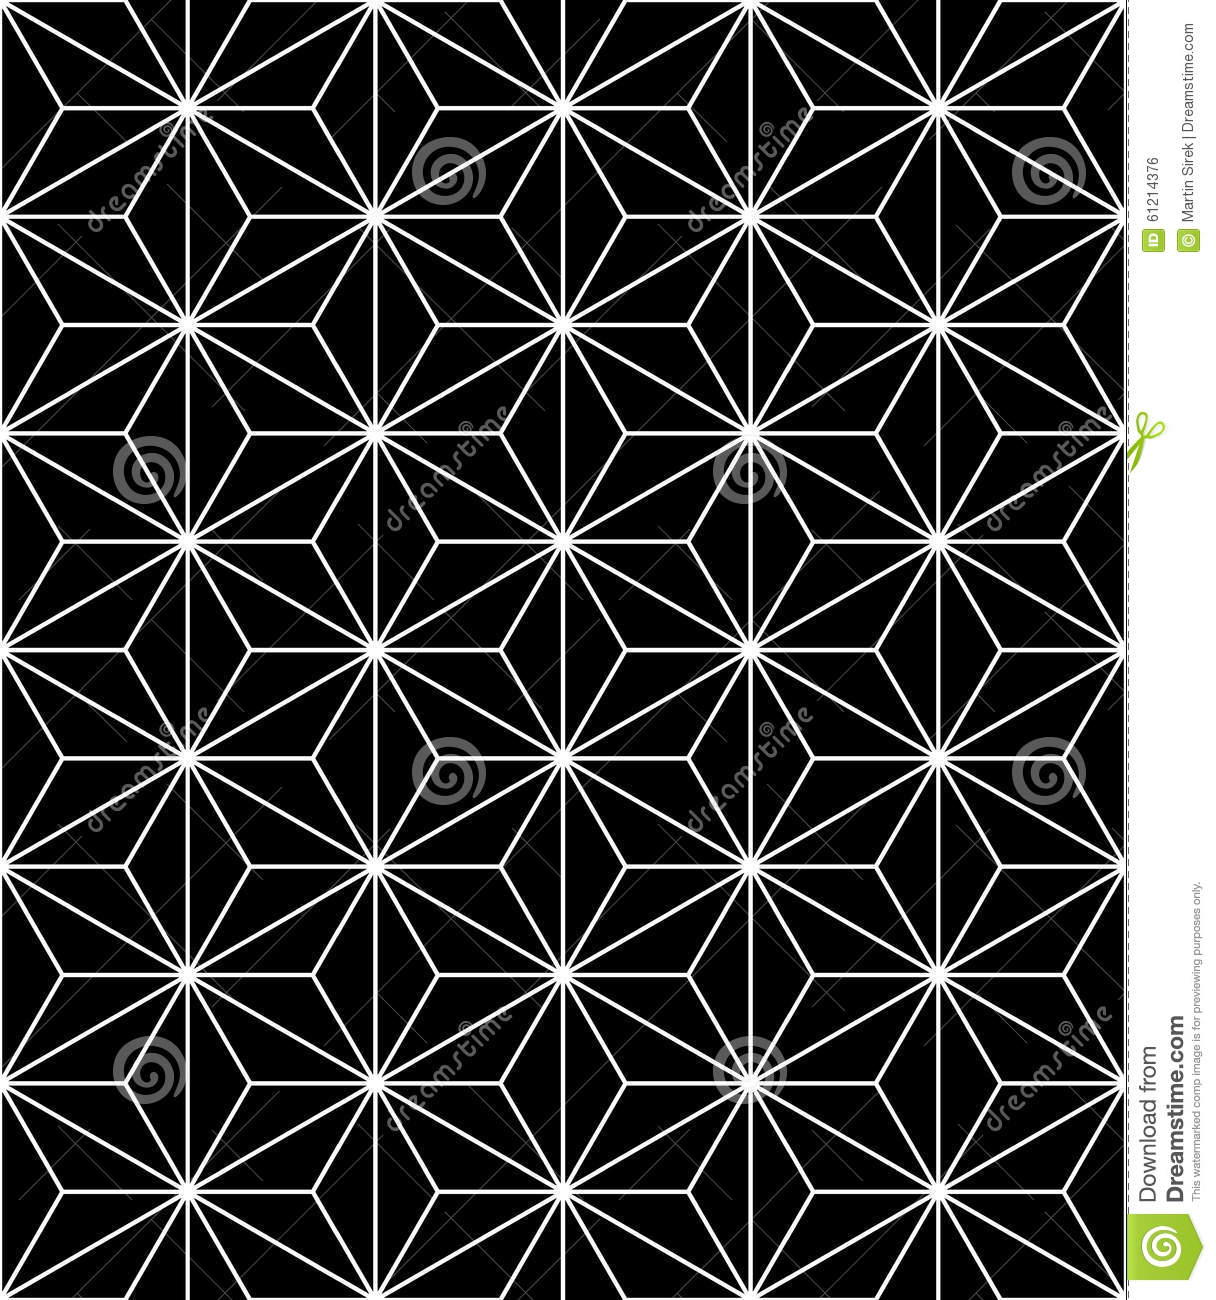 Vector modern seamless sacred geometry pattern, black and white abstract